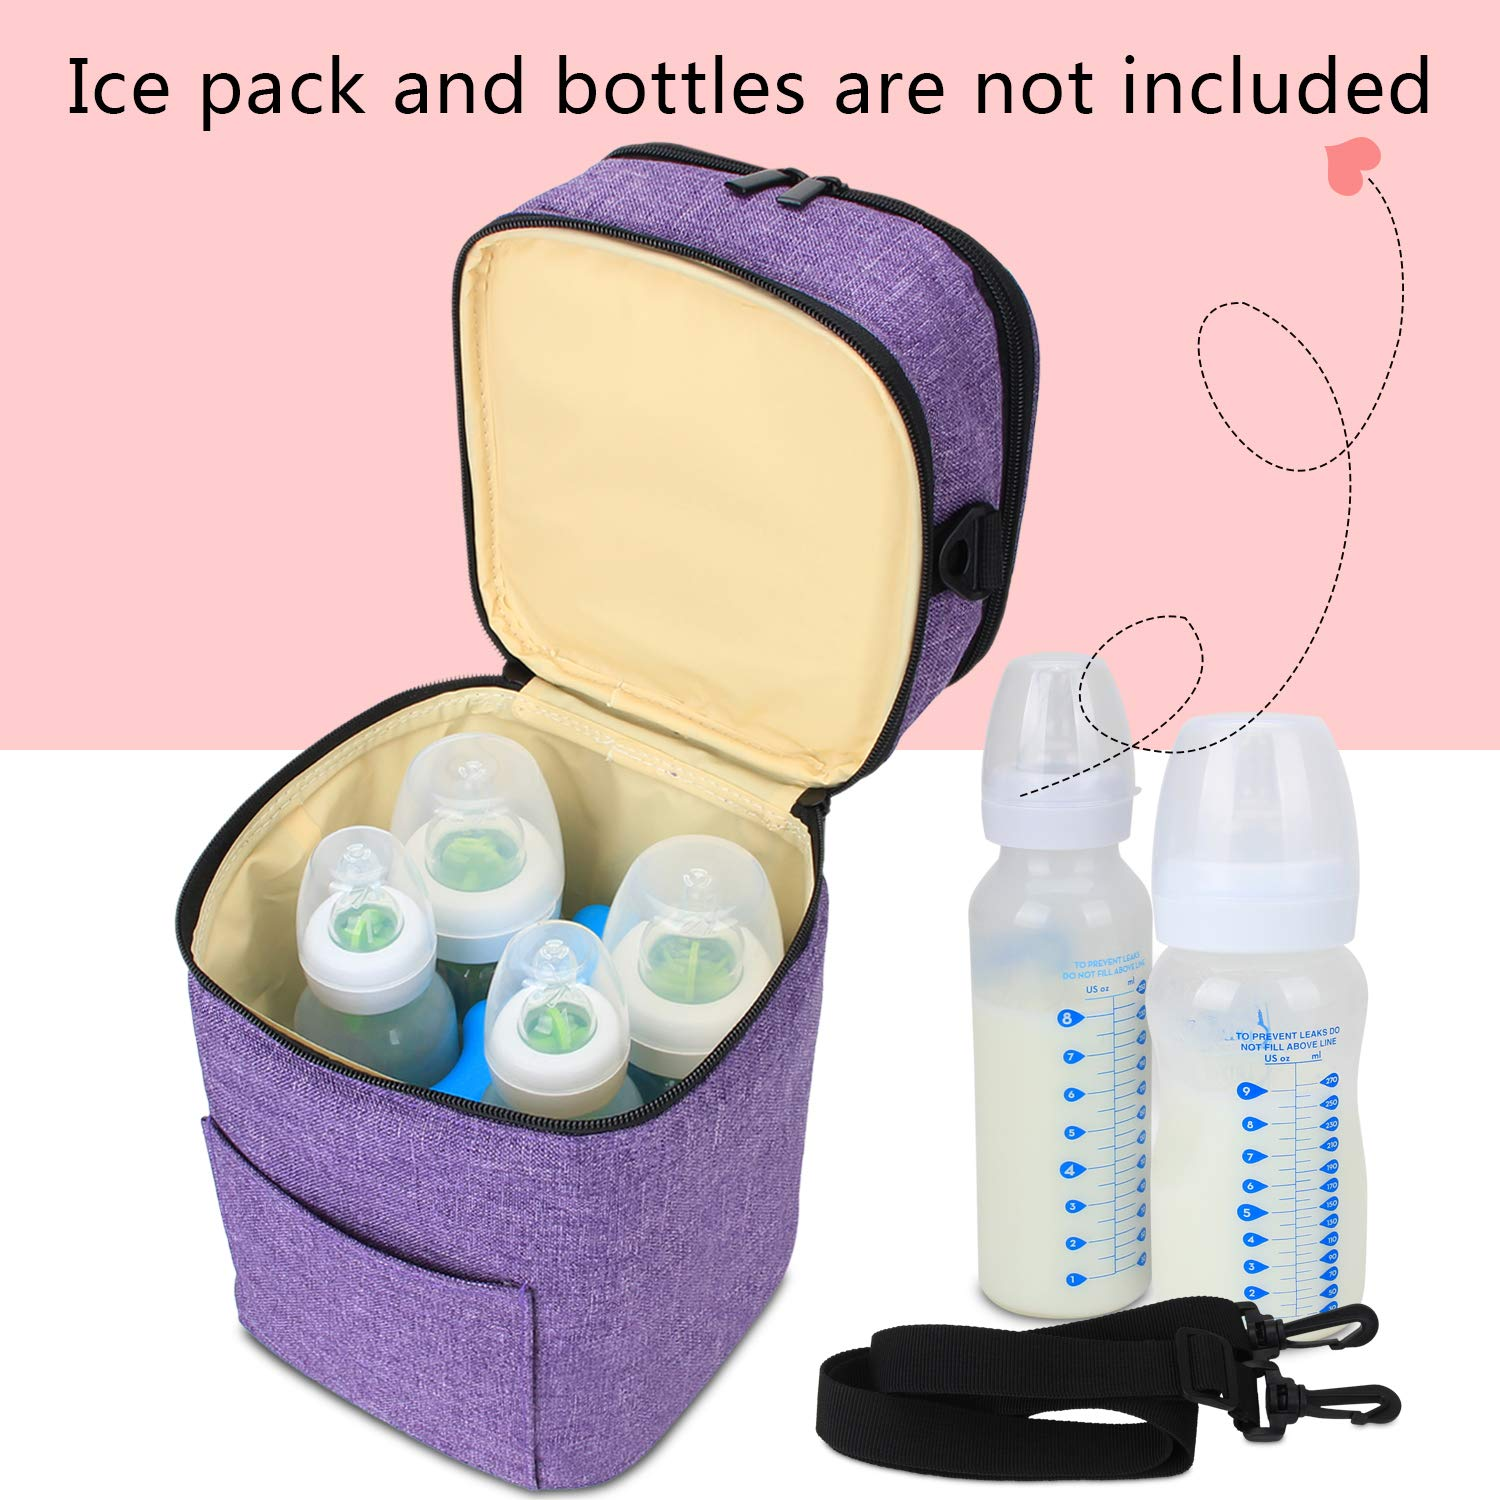 Fits 4 Bottles, Up to 5 Ounce Bag Only Luxja Breastmilk Cooler Bag Gray Double-Layer Cooler Bag for Breast Milk and Bottle Set